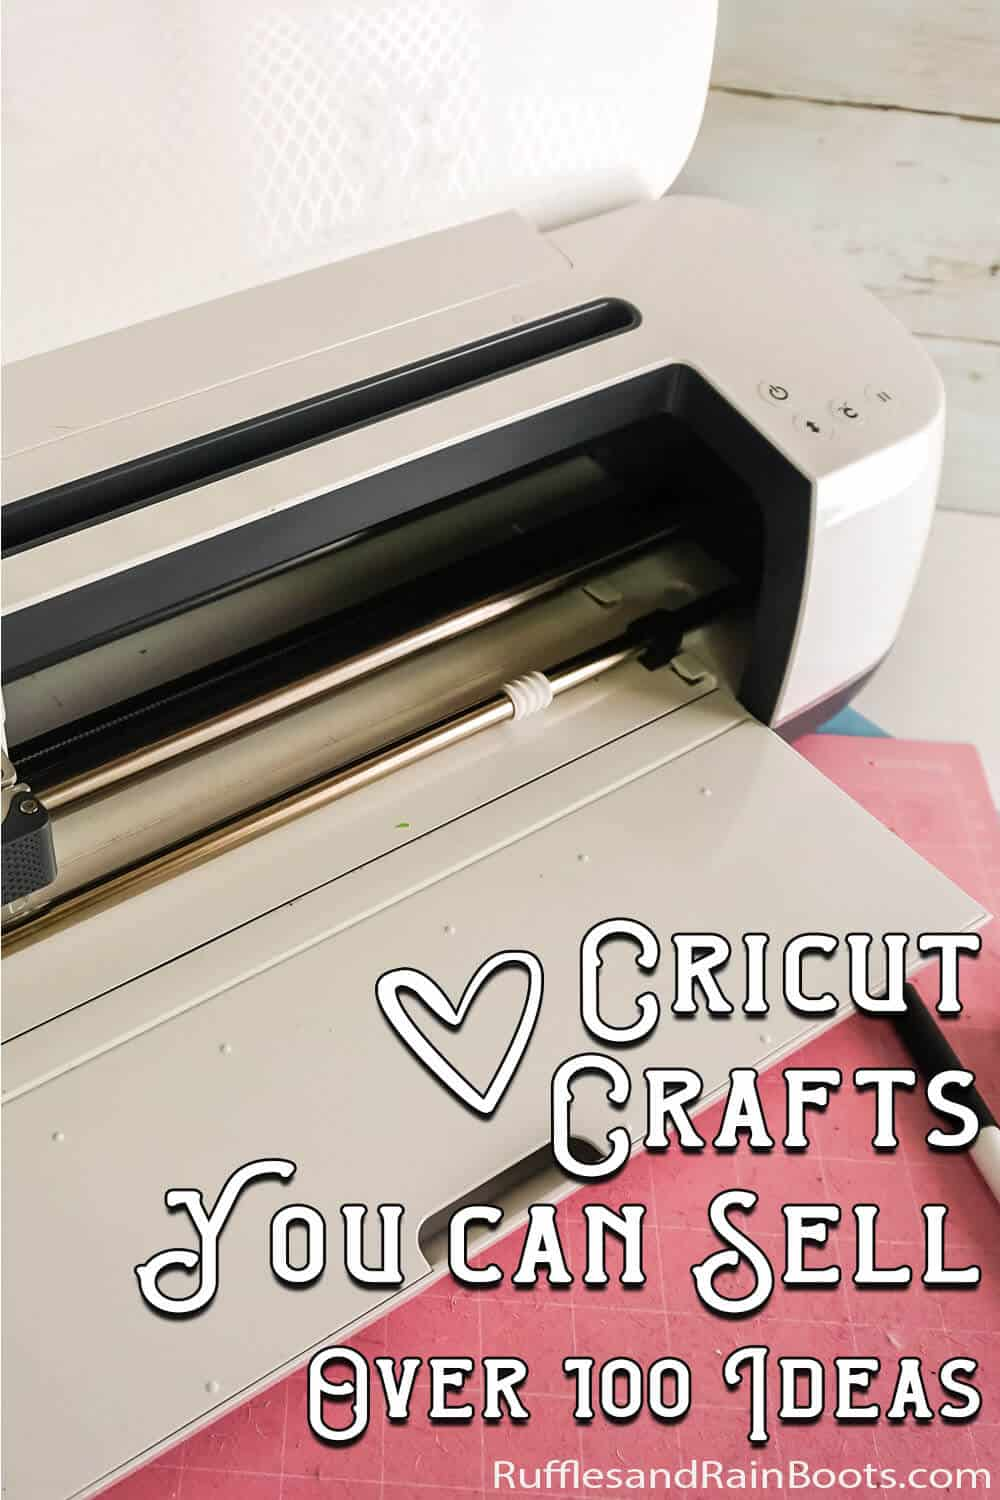 Cricut Projects To Sell More Than 100 Ideas And Business Tips